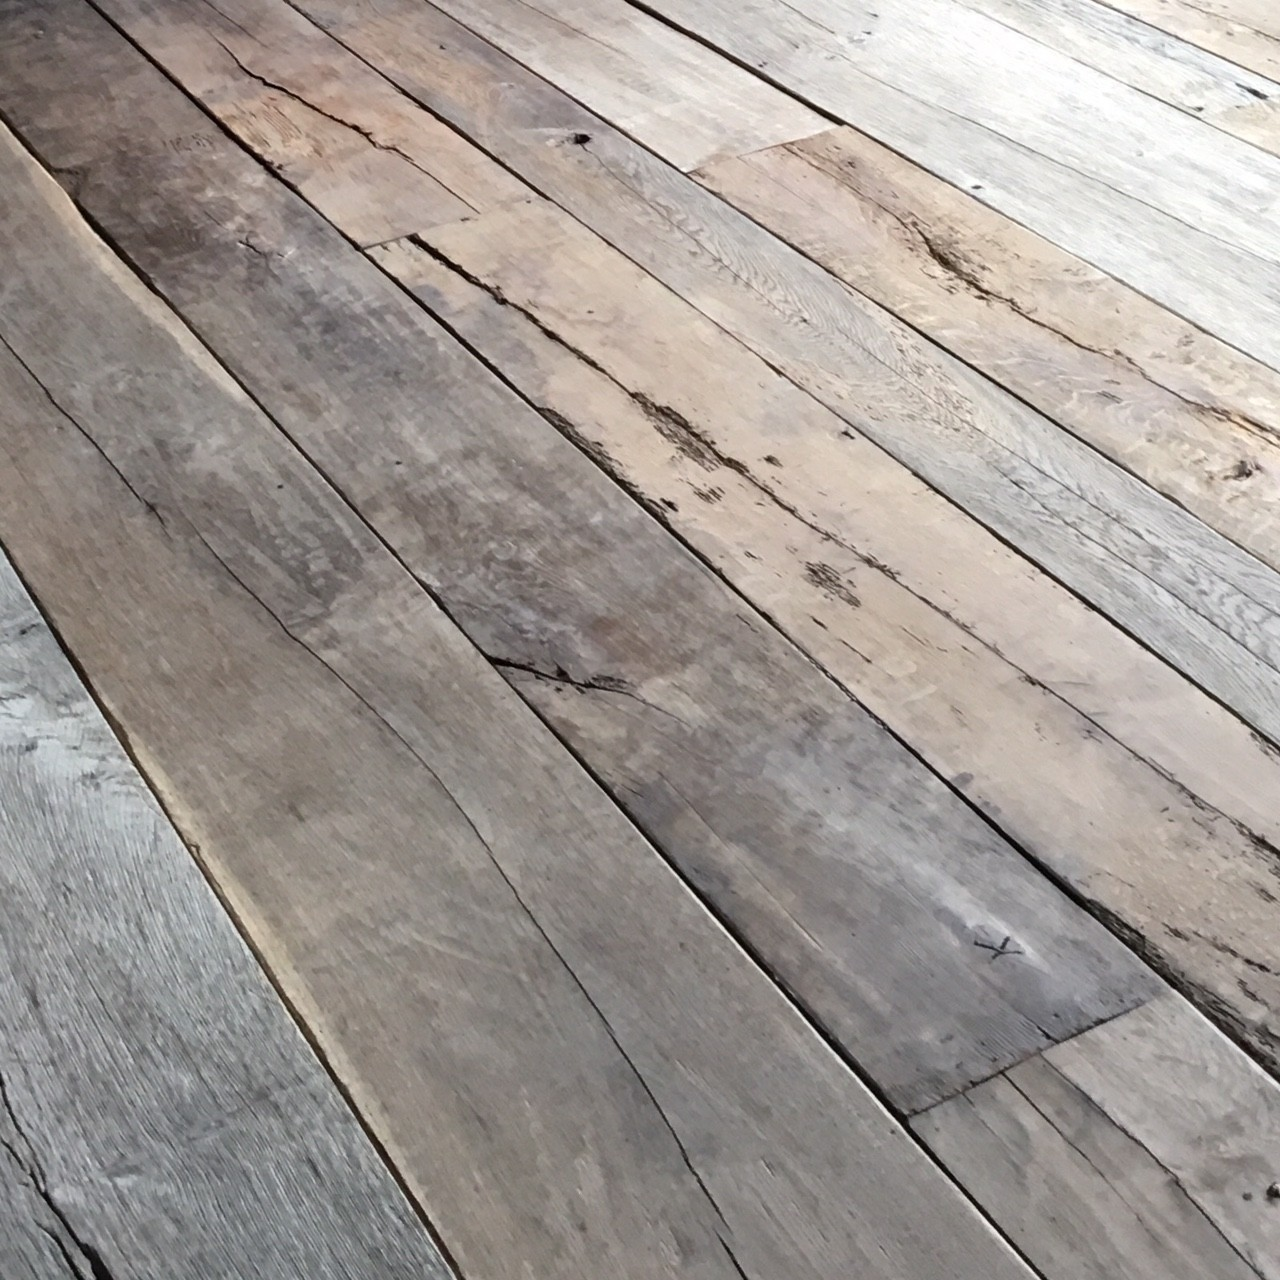 18th century French floorboards